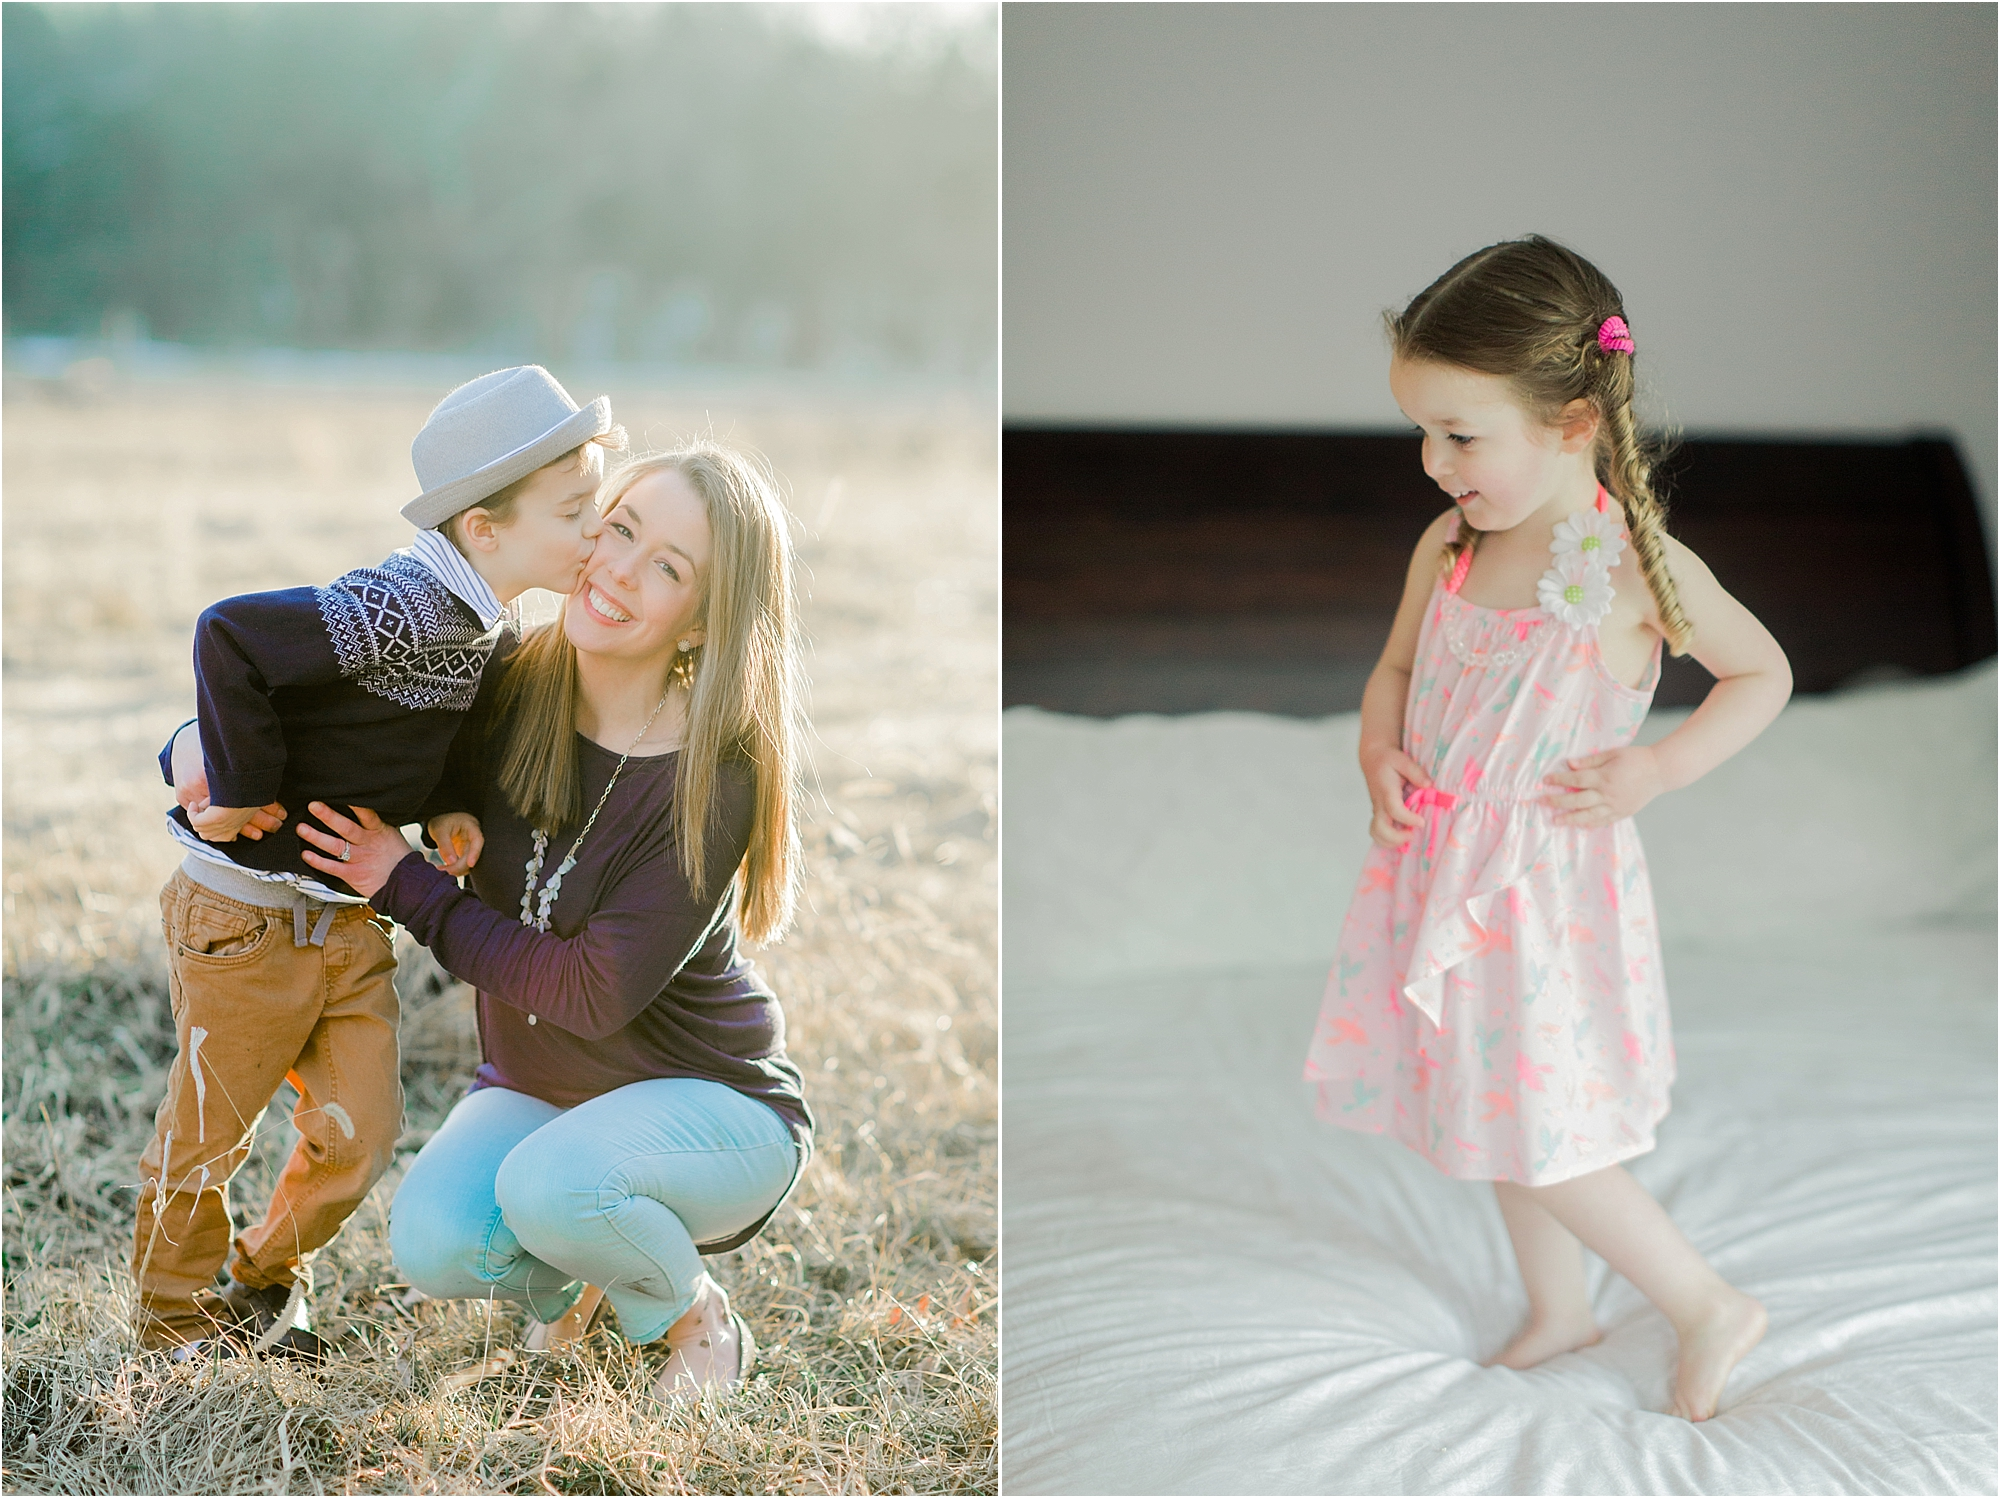 St Louis Family Photography - Jordan Brittley